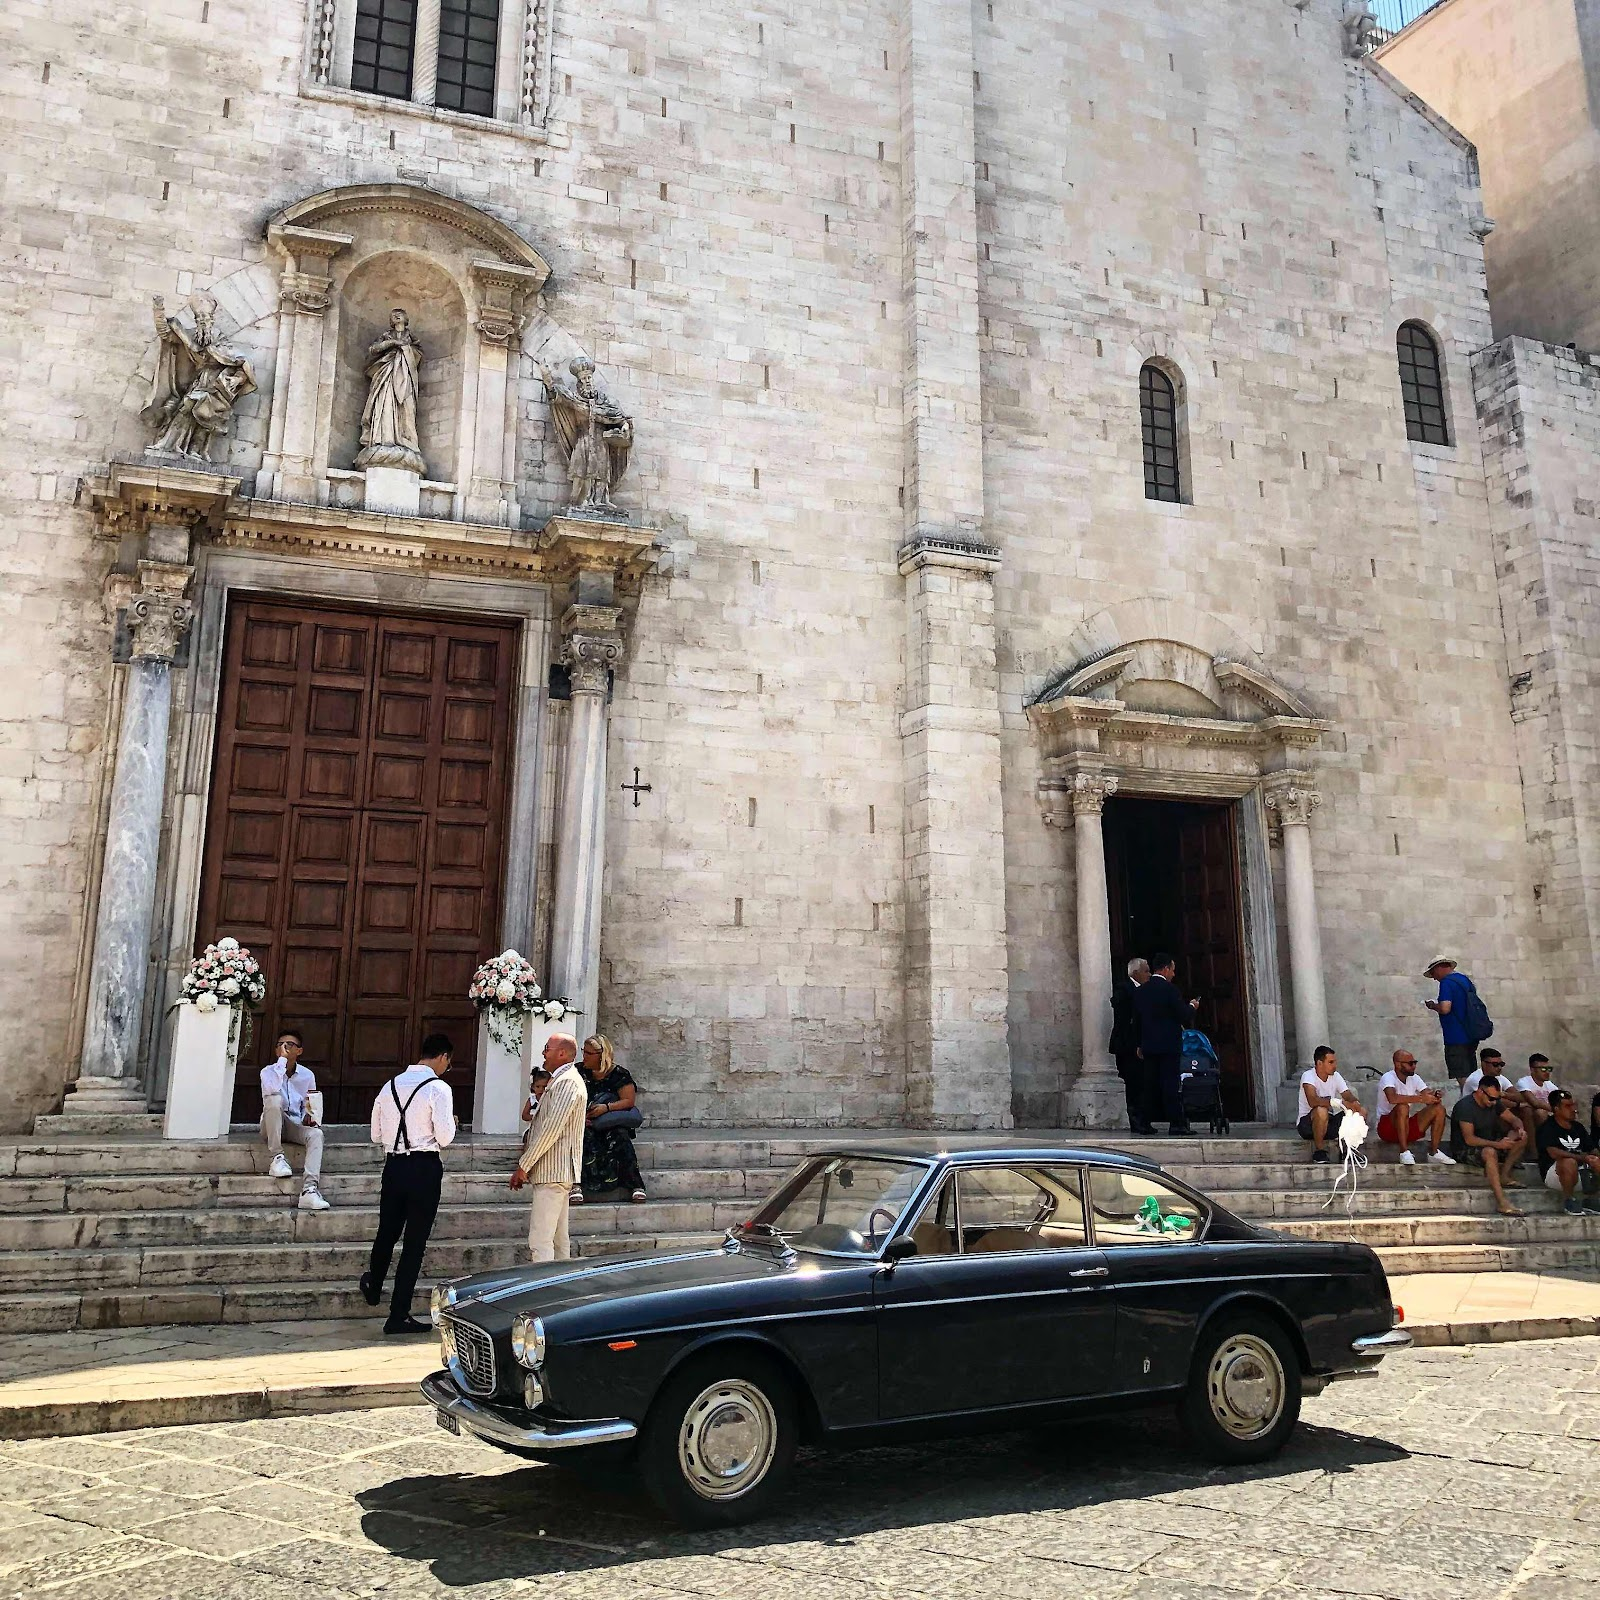 travel-blog-churches-bari-italy